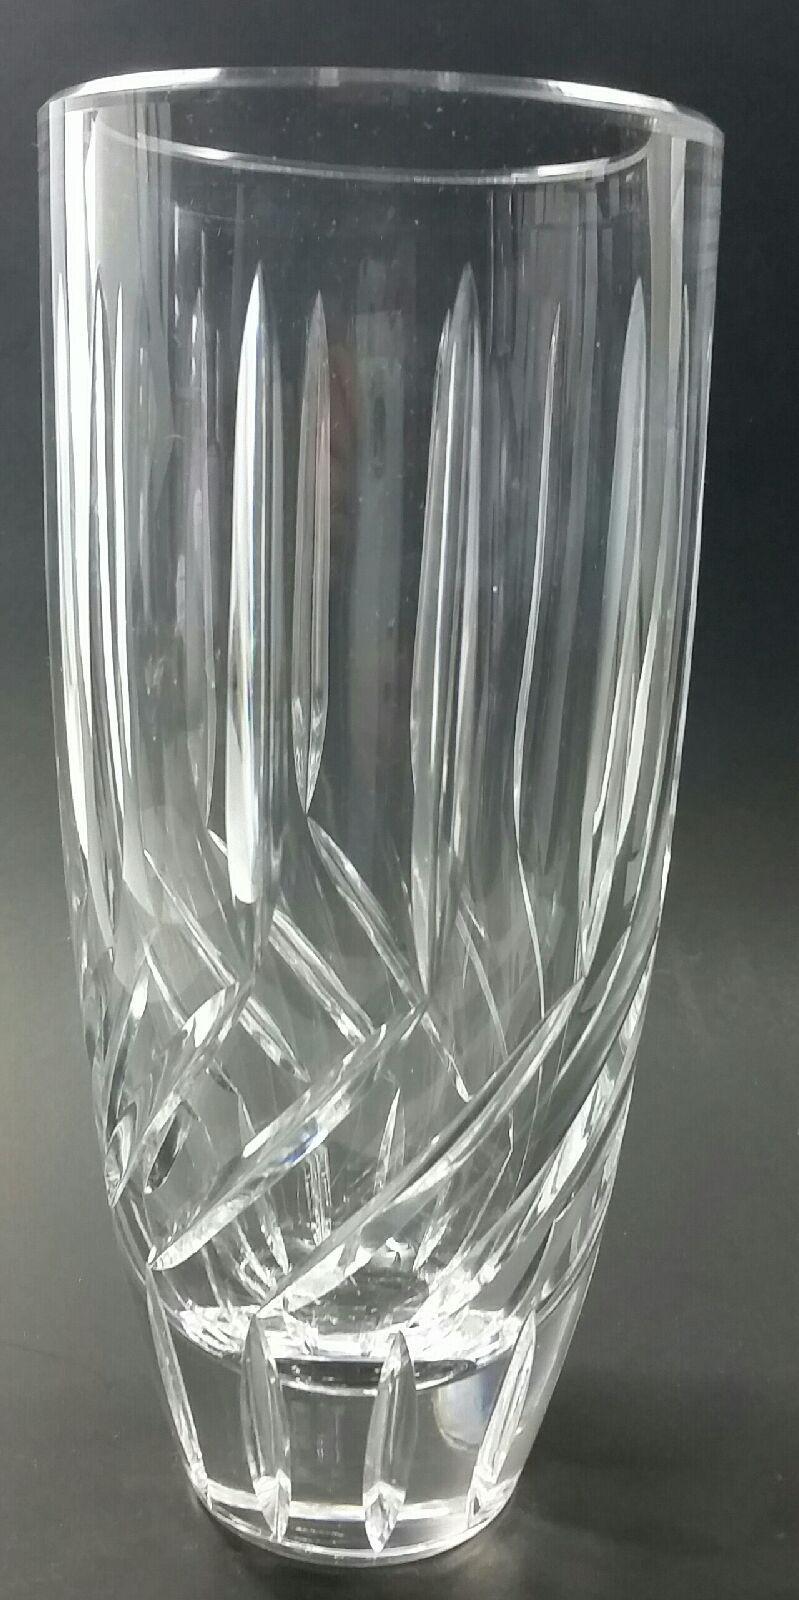 Lenox Lead Crystal Vase Of 30 Best Abp Cut Glass Images On Pinterest Cut Glass Chips and with 30 Best Abp Cut Glass Images On Pinterest Cut Glass Chips and French Fries